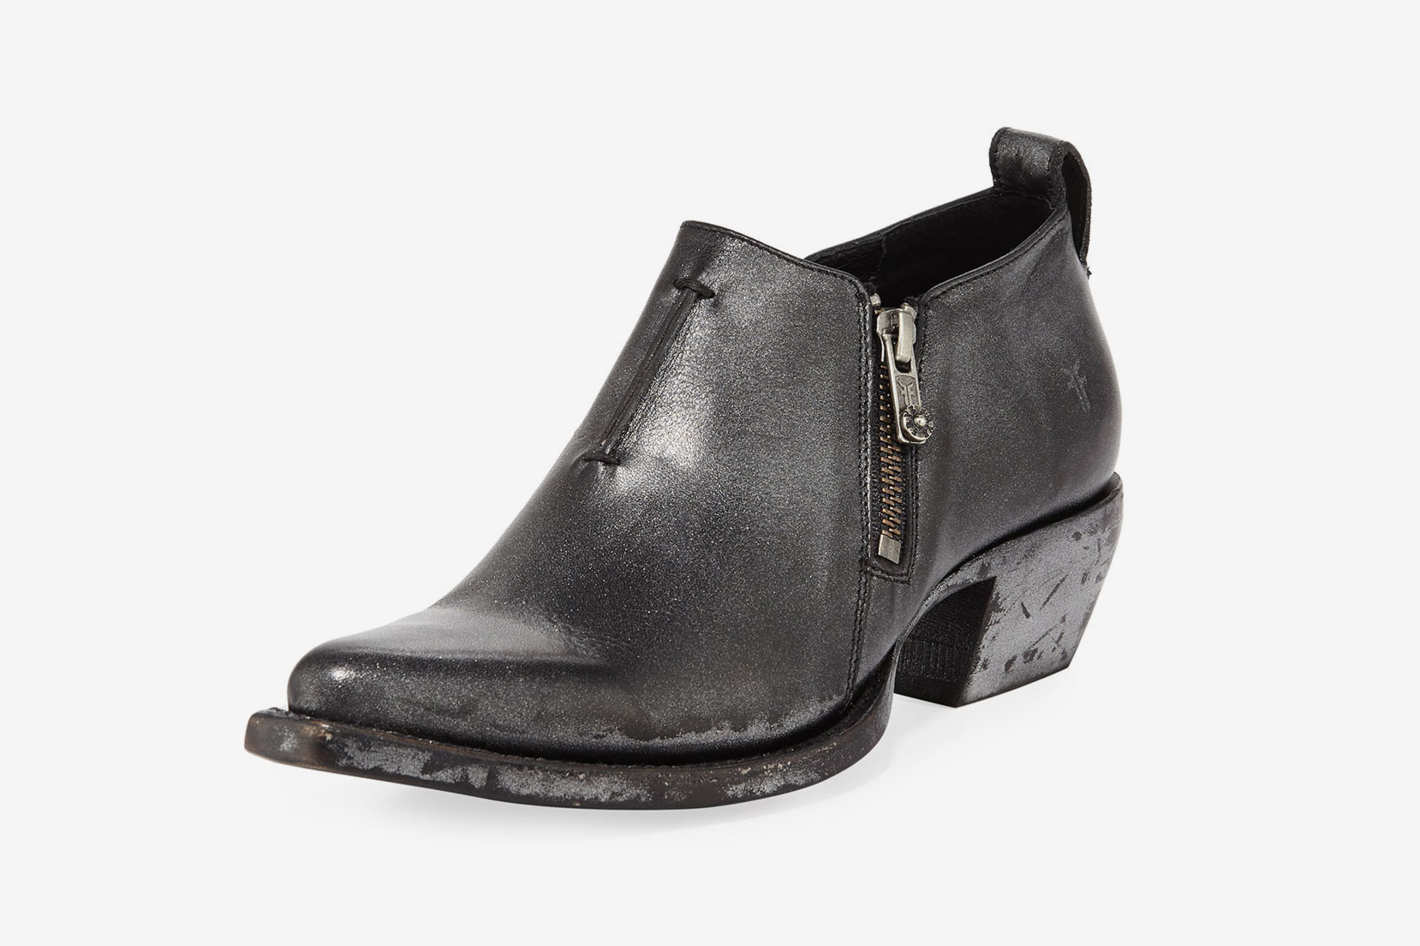 Frye Sacha Metallic Leather Zip Short Booties